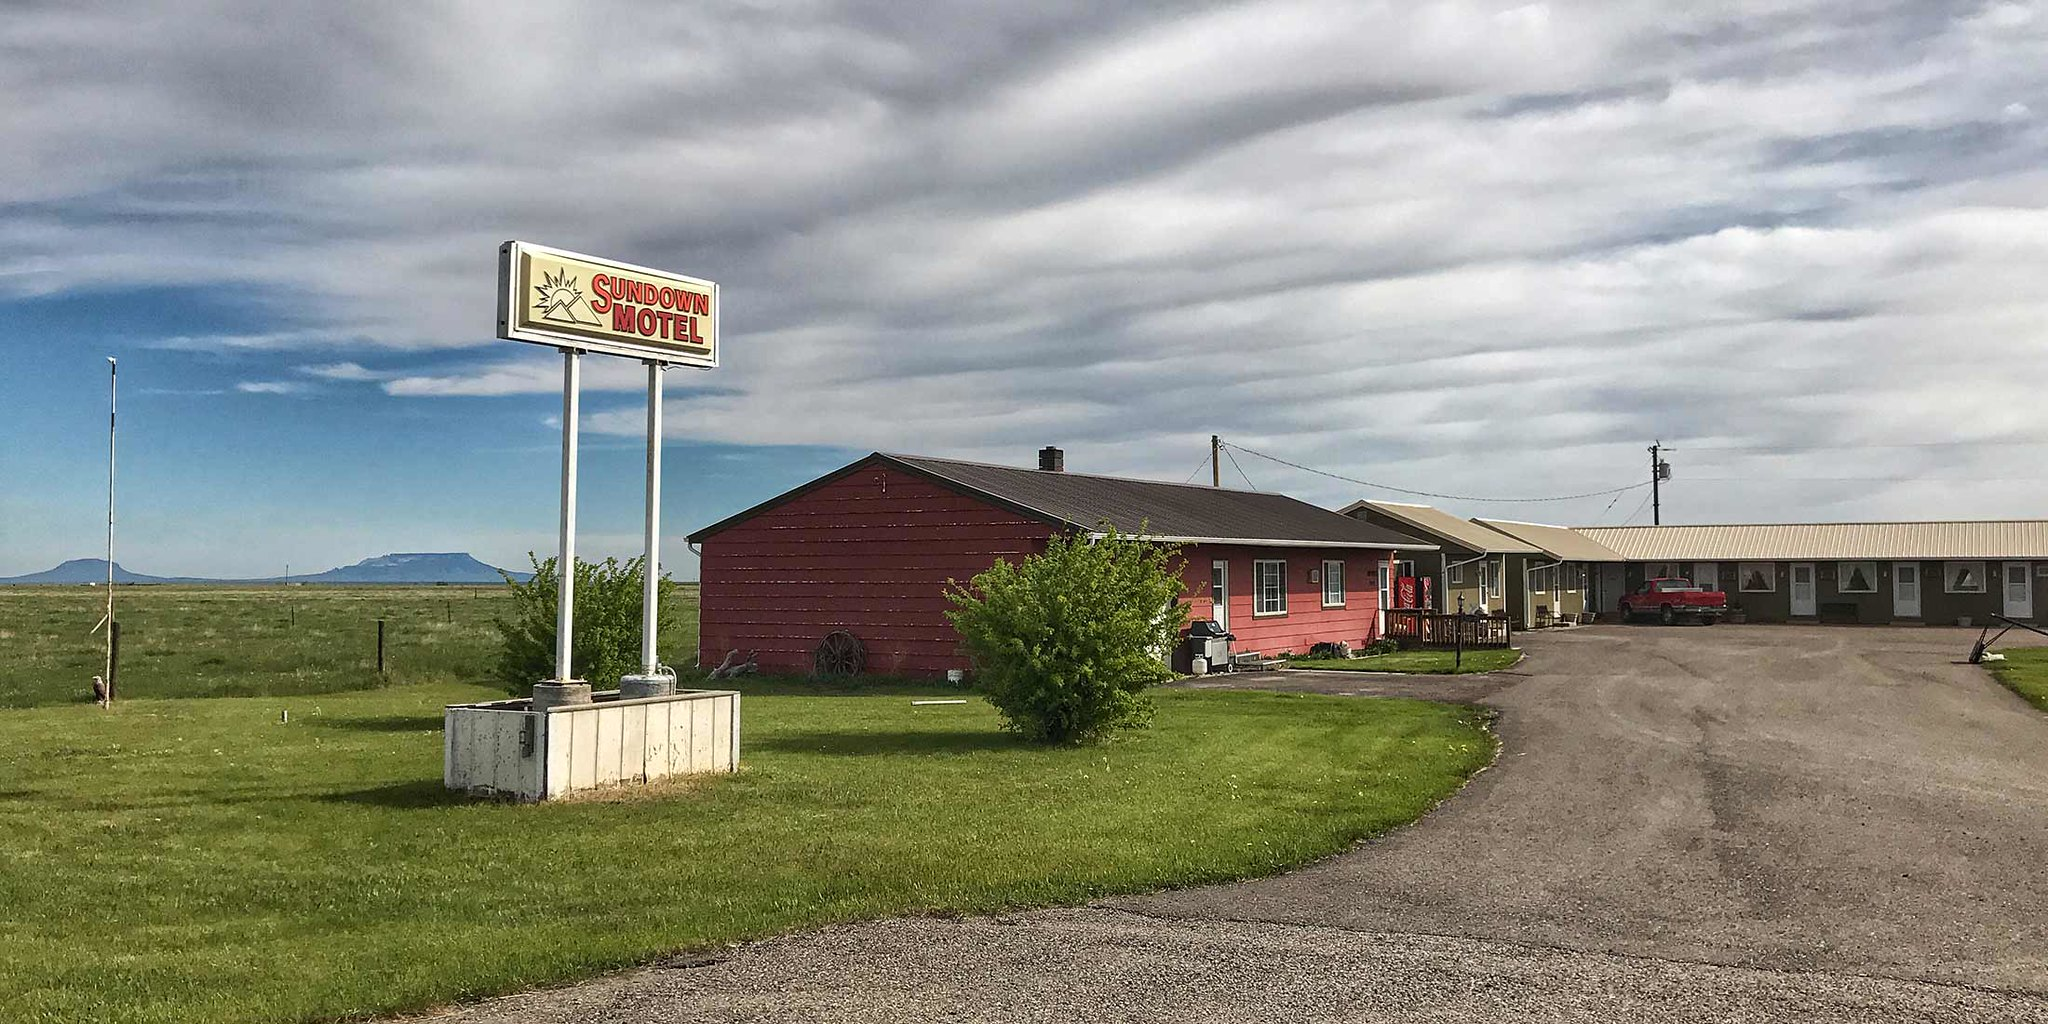 Motel located on US-87 in Stanford, MT 59479